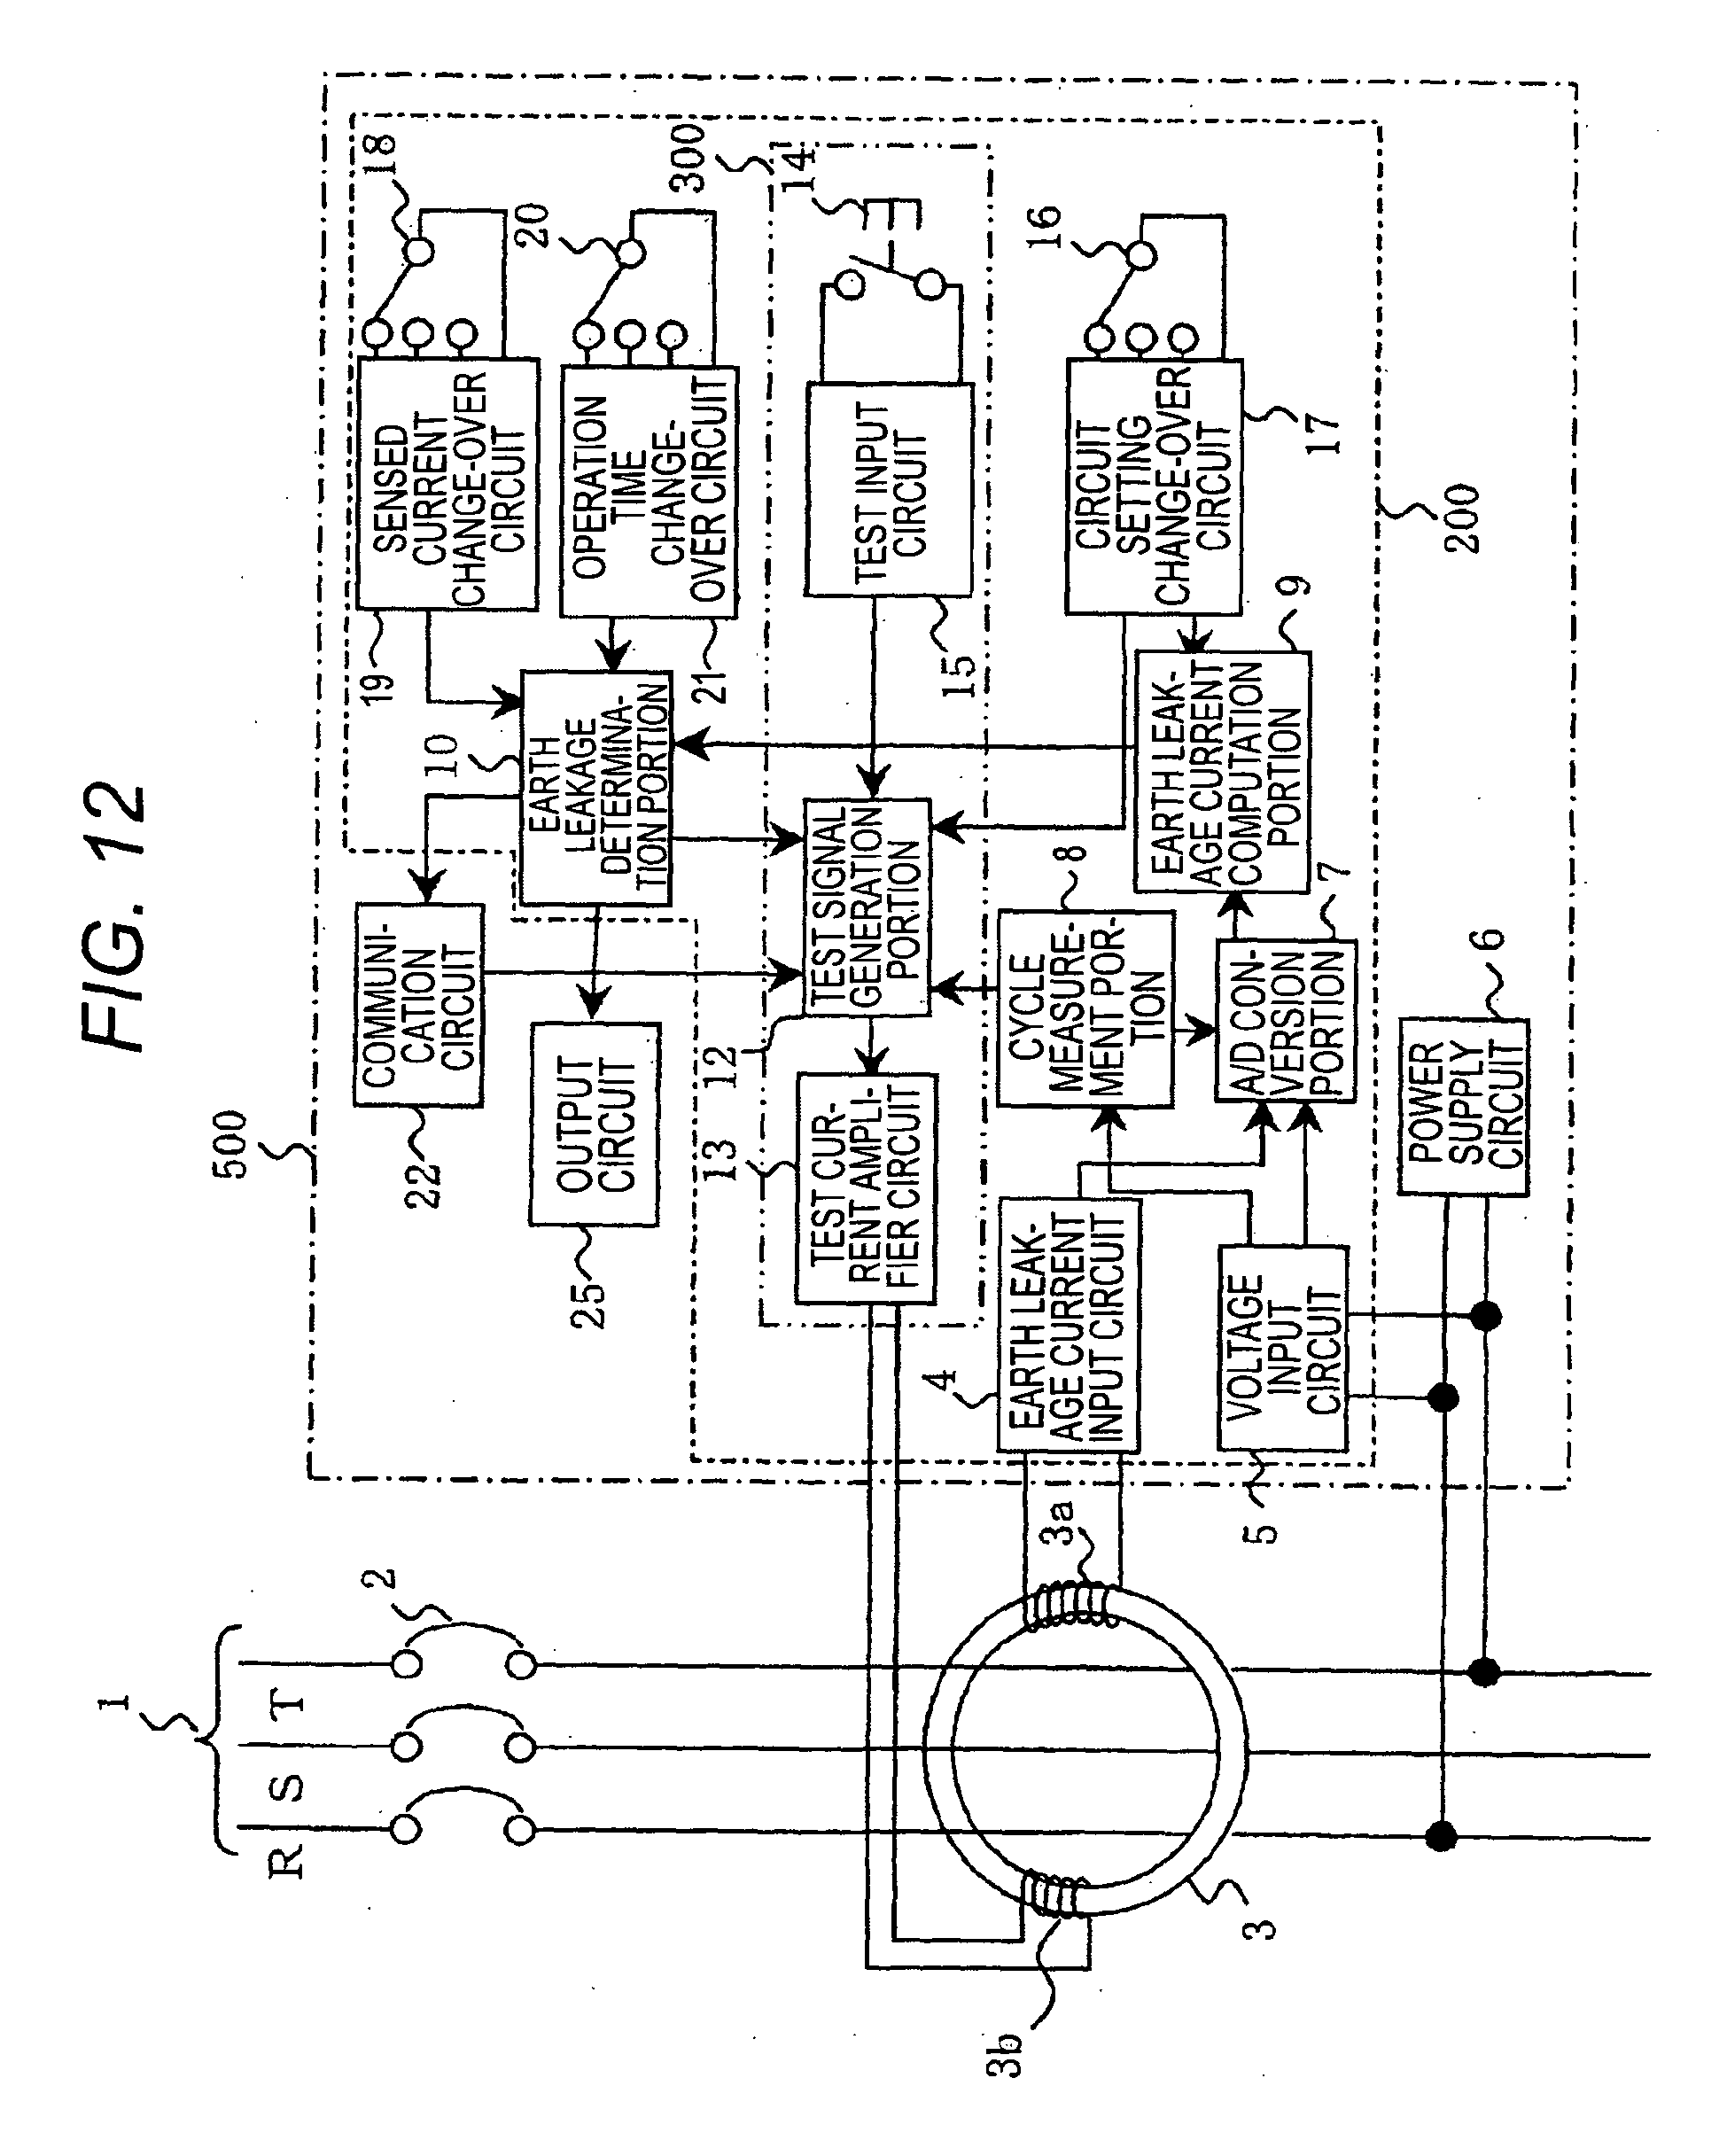 Electric Circuit Drawing At Free For Personal Use Relay Wiring Diagram 1949x2433 Using Motor Bridges Components